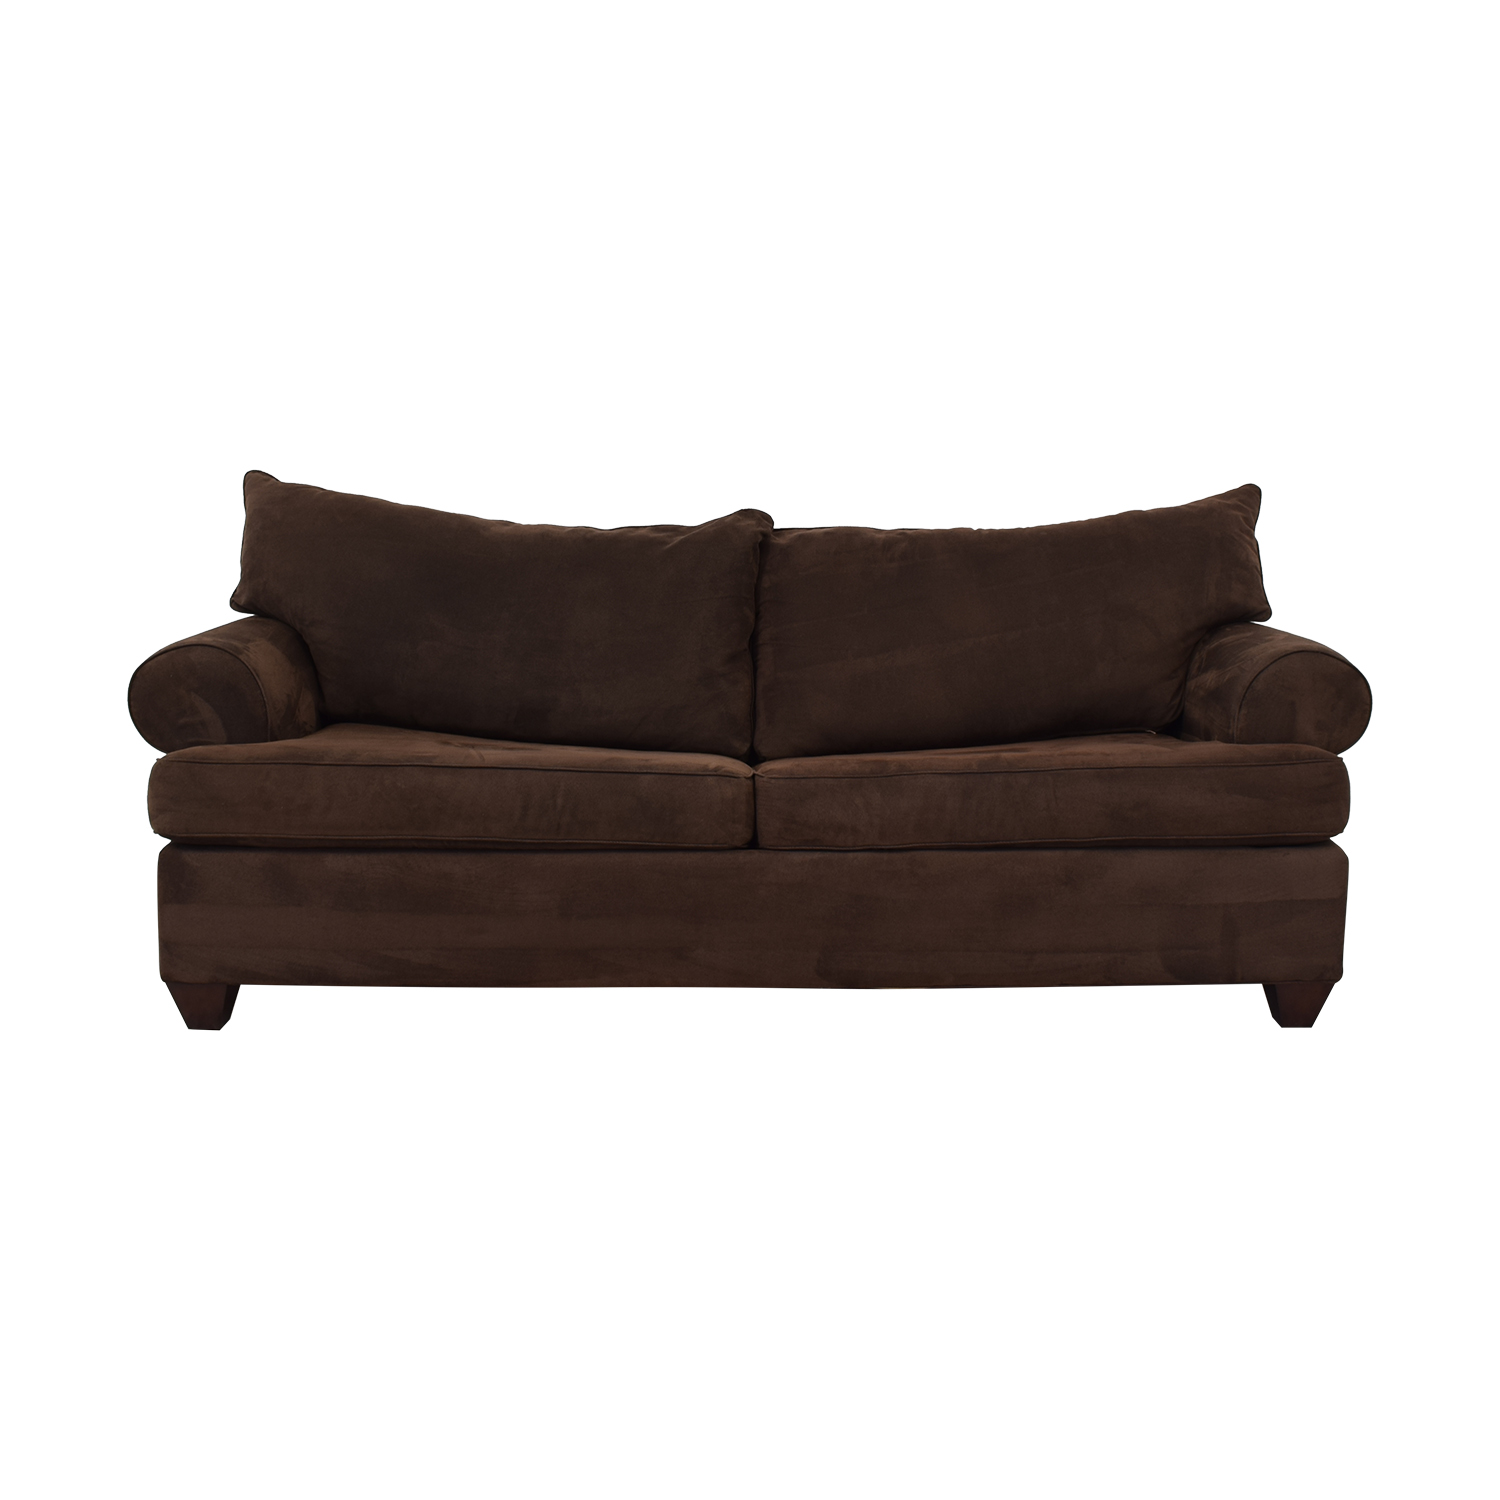 Bauhaus Furniture Bauhaus Furniture Rochester Java Roll-Arm Sofa Bed Sofas